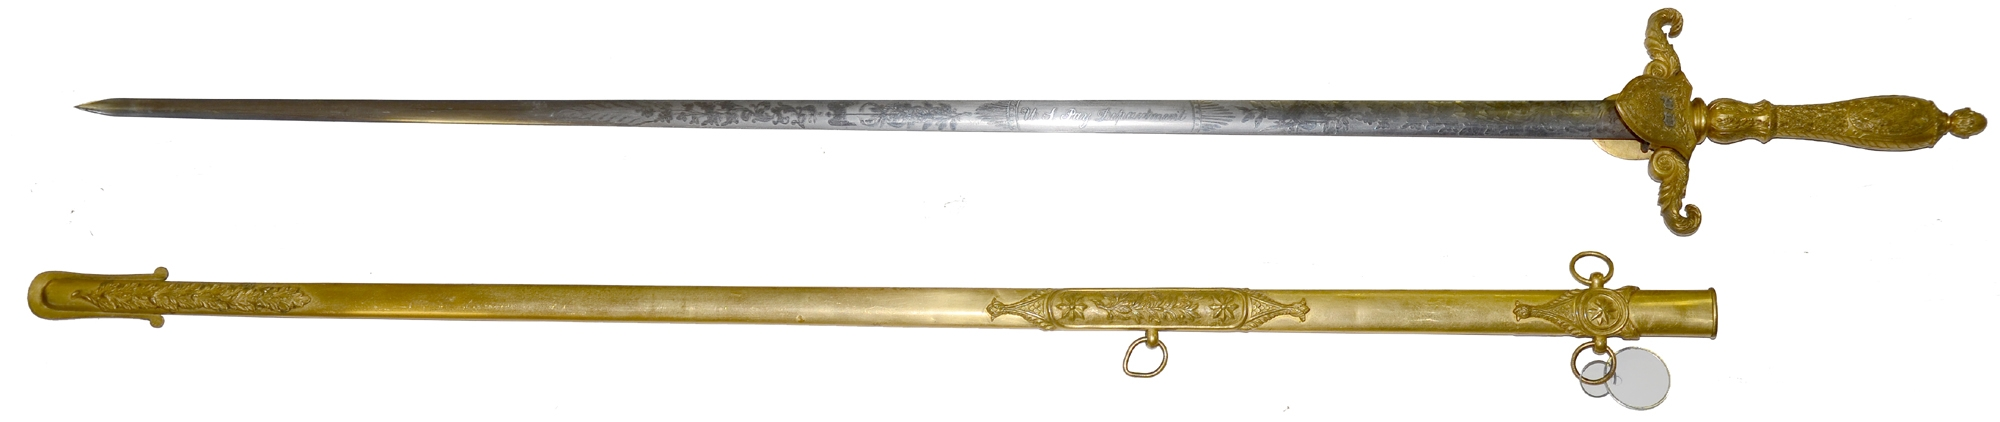 MODEL 1840 PAYMASTER DEPARTMENT SWORD BY AMES